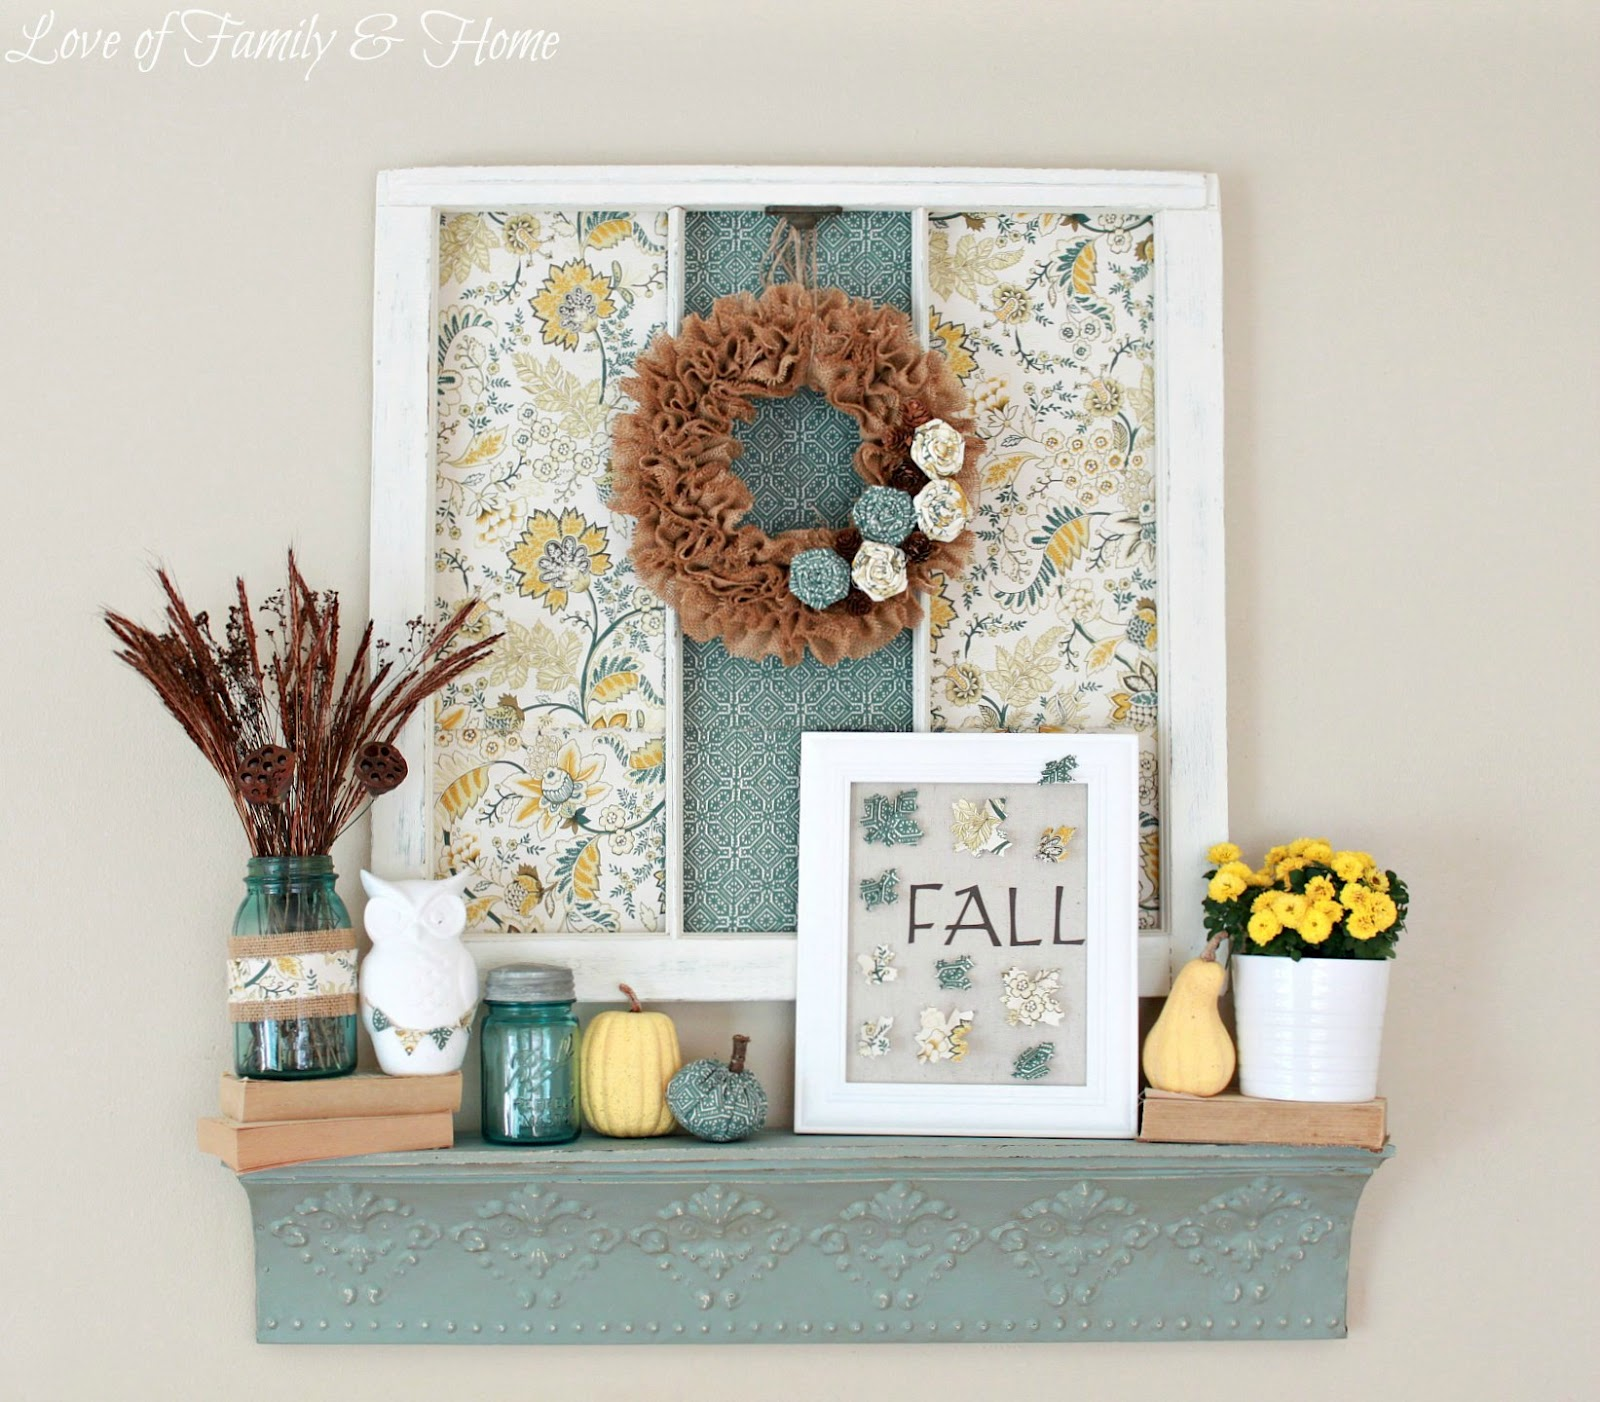 Wall Colour Inspiration: Teal (Aqua) & Yellow Fall Mantel